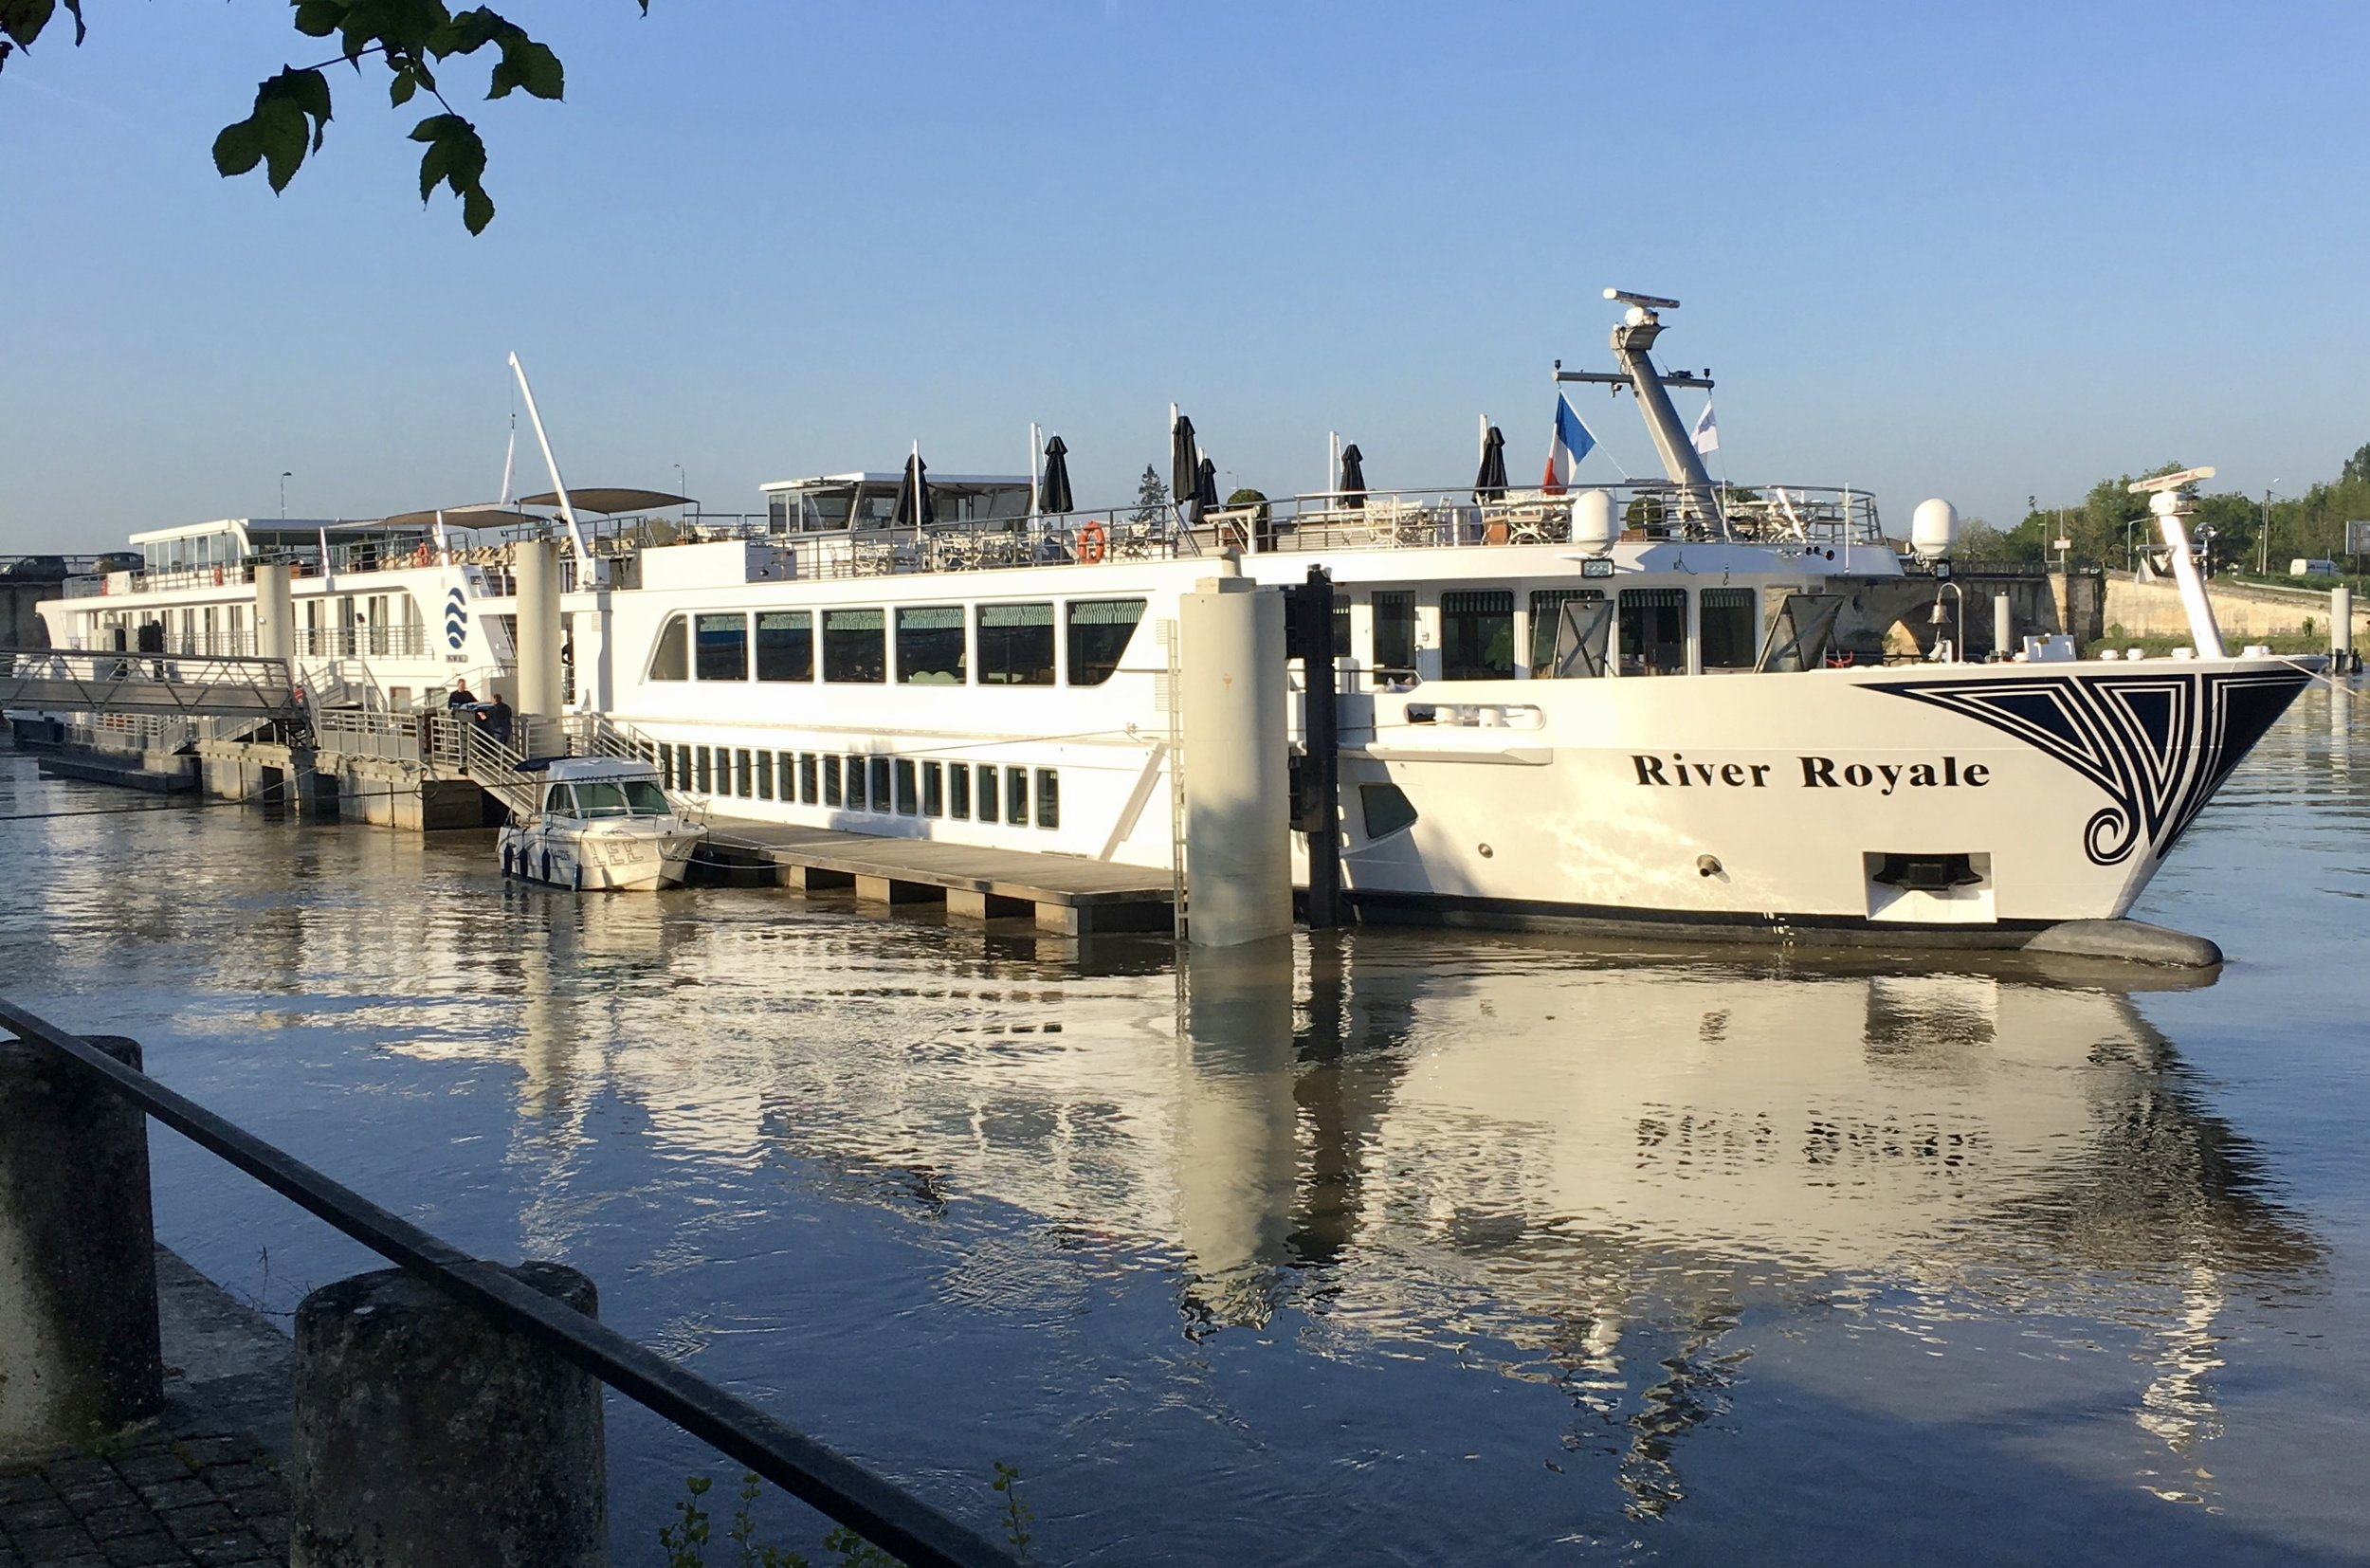 The River Royale is a nimble ship allowing passage in narrower rivers which makes it an ideal vessel for sailing on the Garonne and Dordogne.